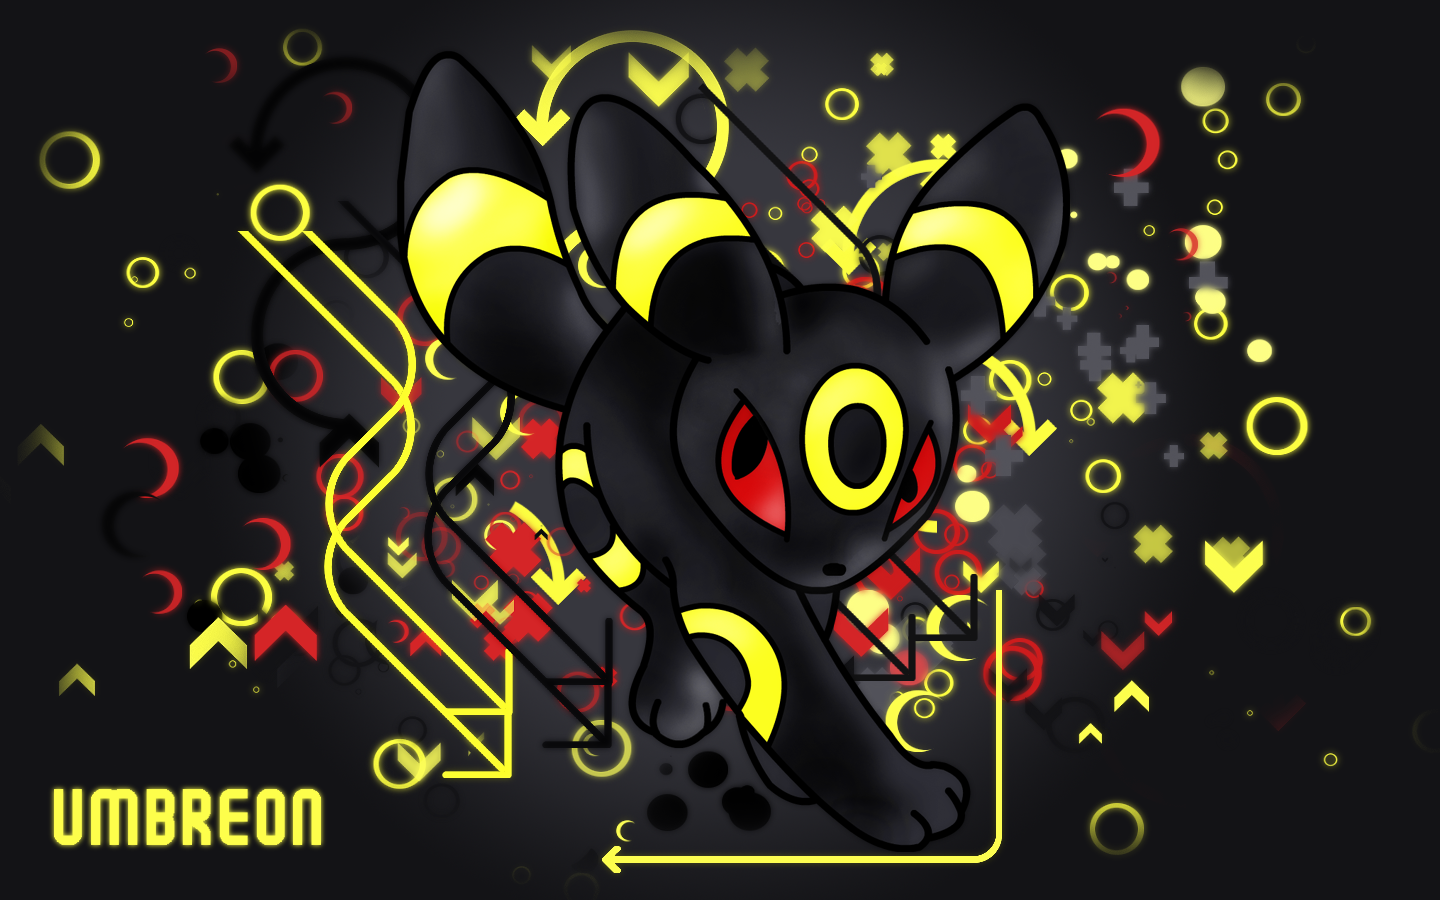 plNhgk moreover pokemon umbreon coloring pages 1 on pokemon umbreon coloring pages additionally pokemon umbreon coloring pages 2 on pokemon umbreon coloring pages in addition pokemon umbreon cool as backgrounds on pokemon umbreon coloring pages in addition pokemon umbreon coloring pages 4 on pokemon umbreon coloring pages